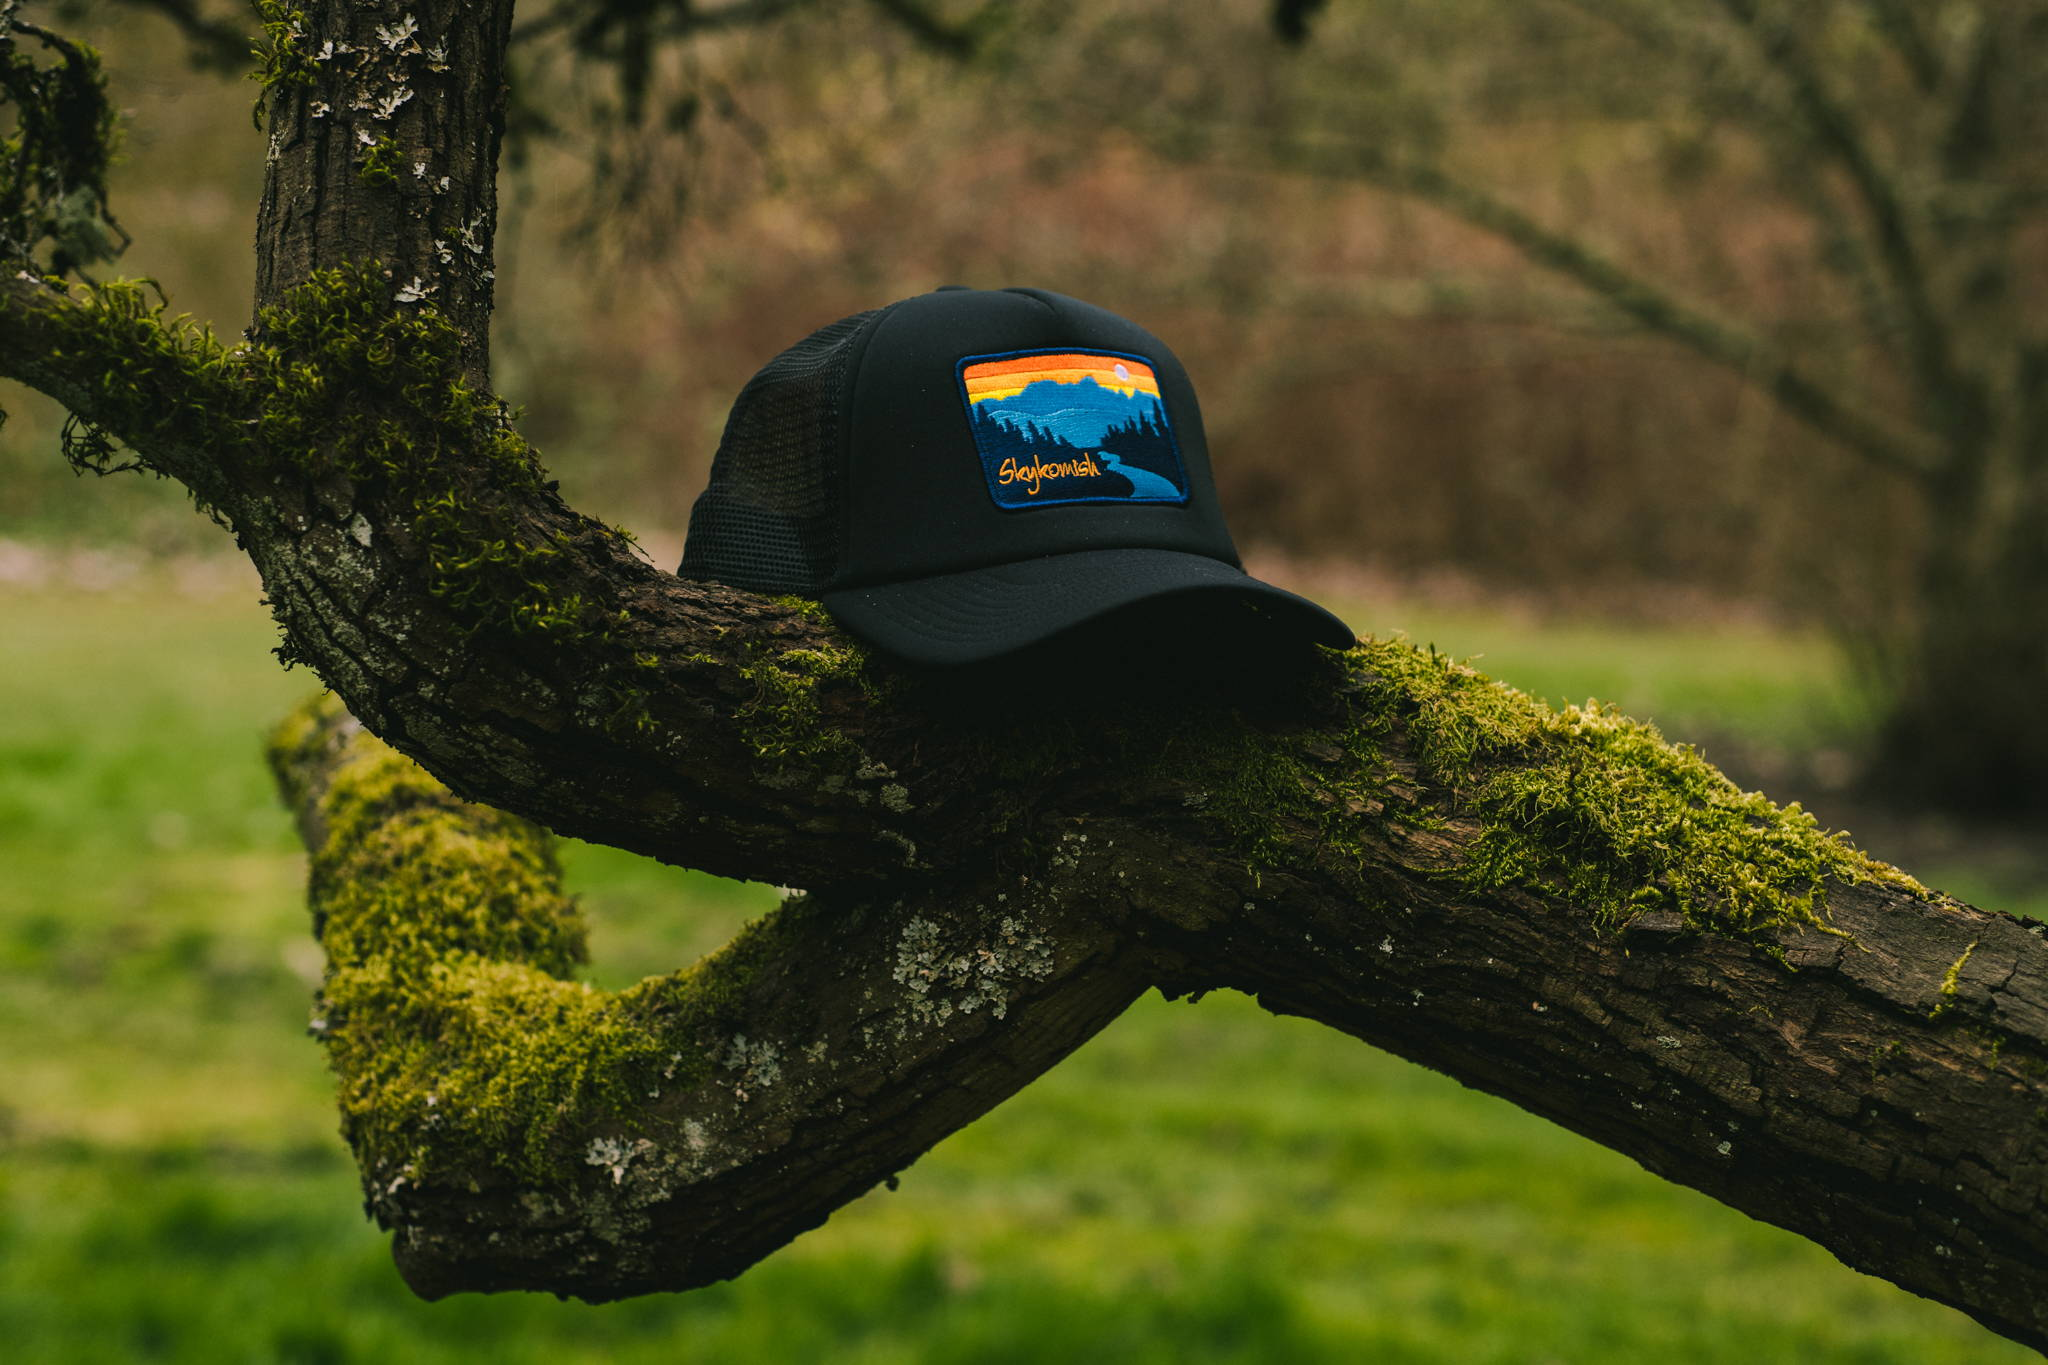 Skykomish, Washington Custom Trucker Cap